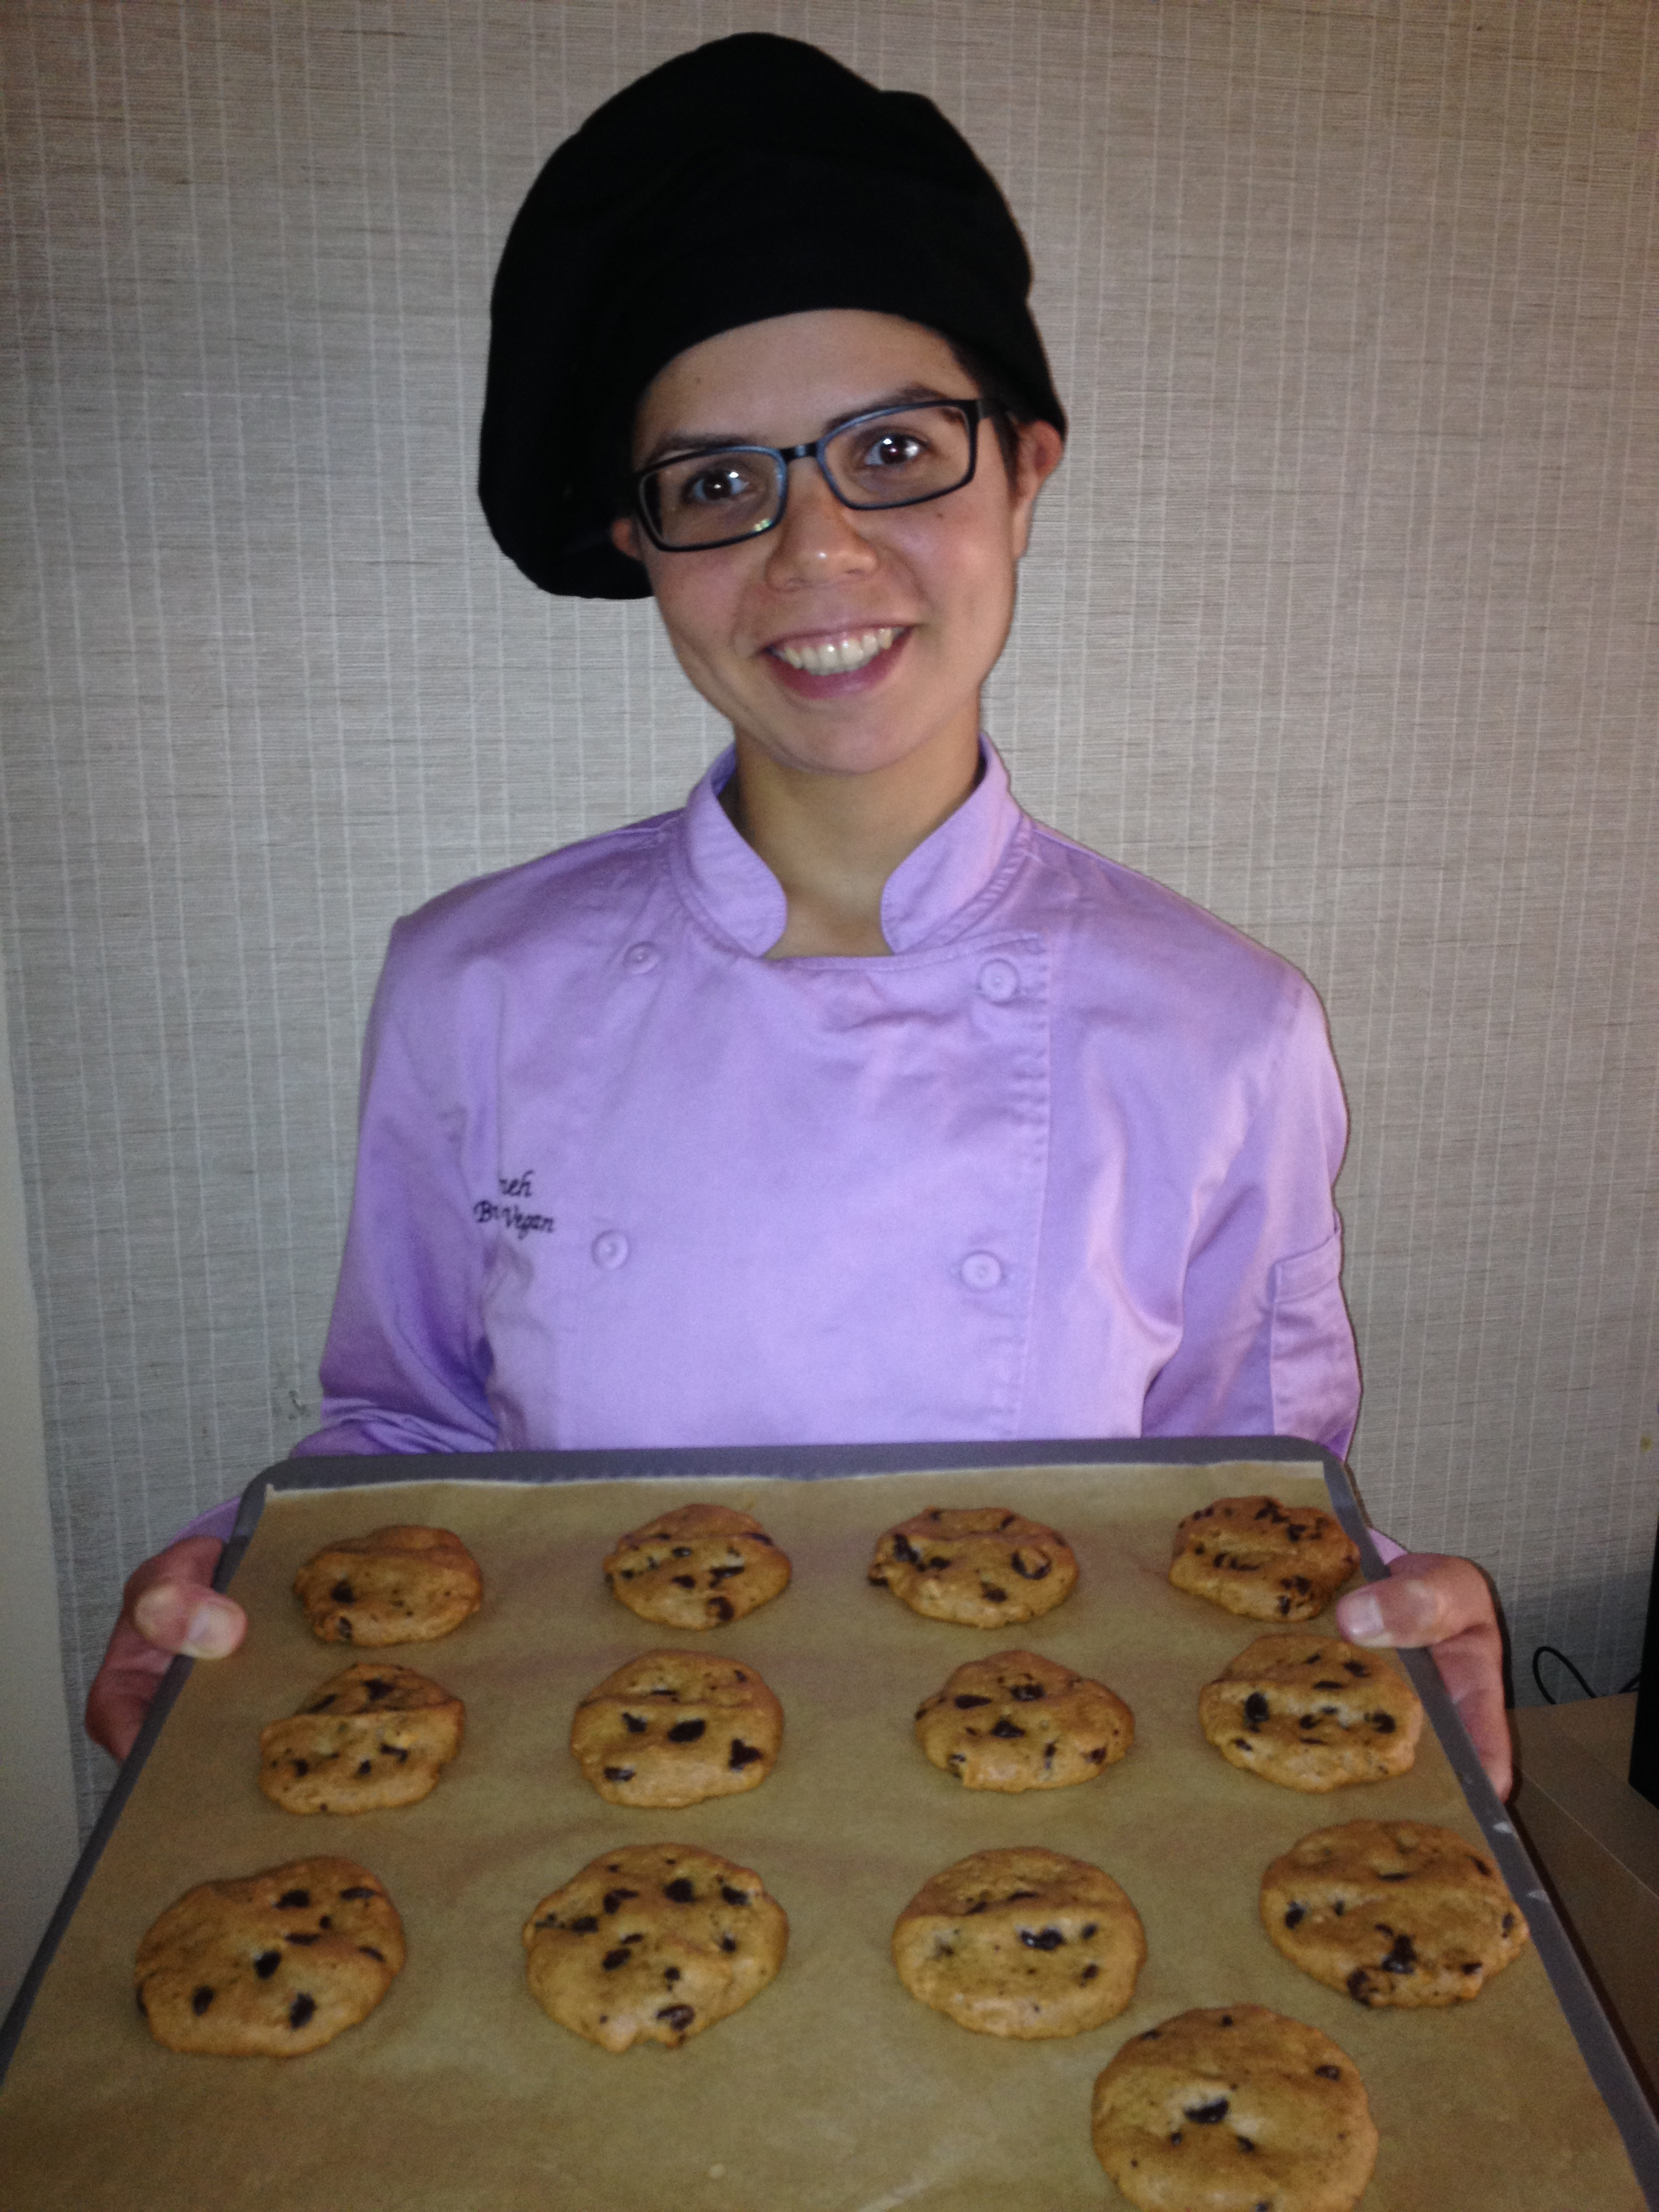 Parvaneh Keivanfar of Butterfly Vegan with Cookies